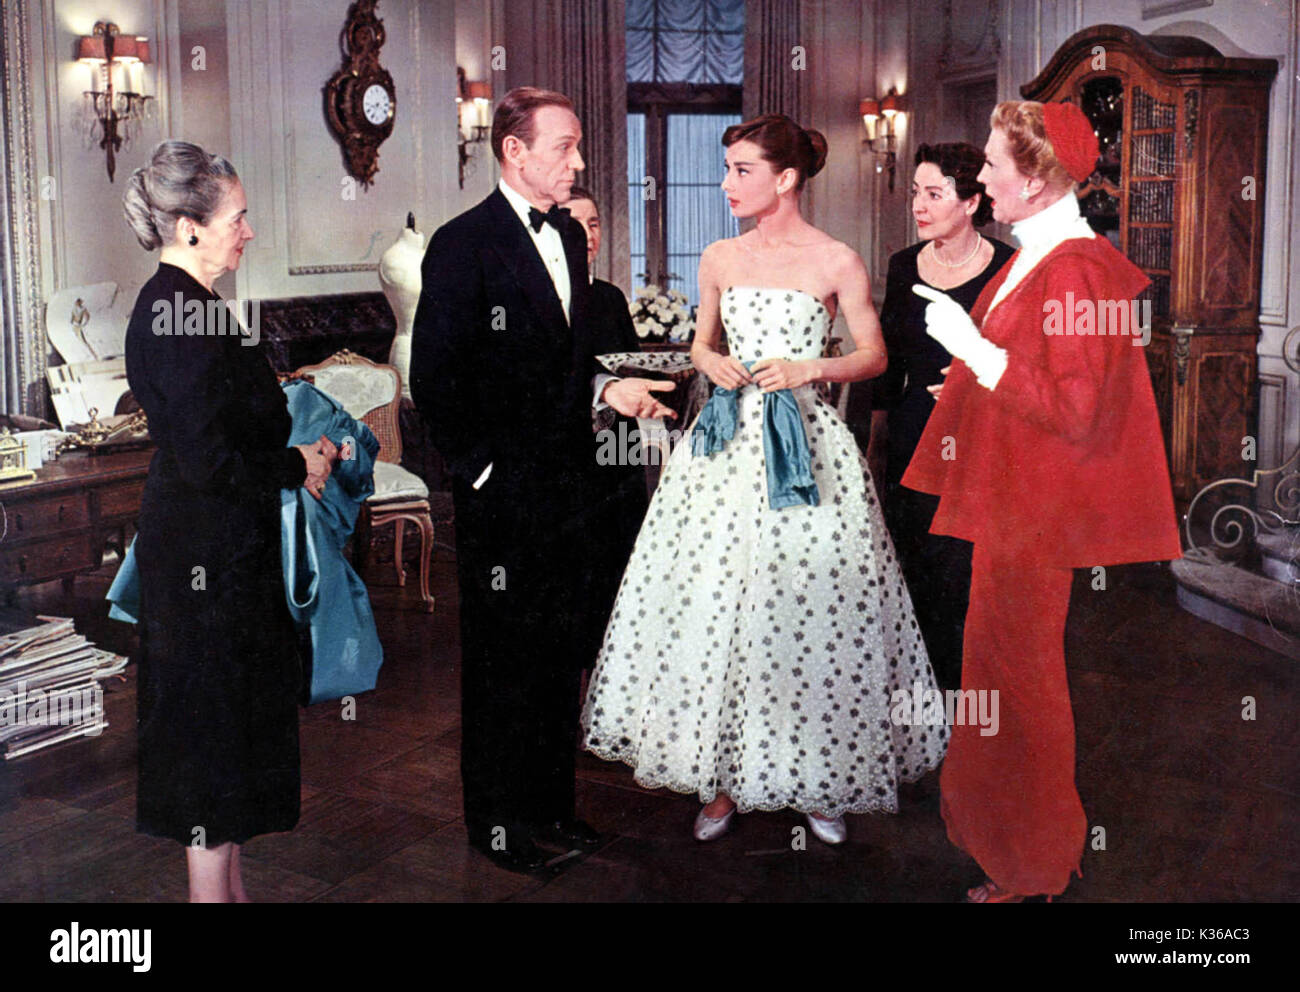 FUNNY FACE unidentified, Fred Astaire, Audrey Hepburn, unidentified and Kay Thompson     Date: 1955 - Stock Image